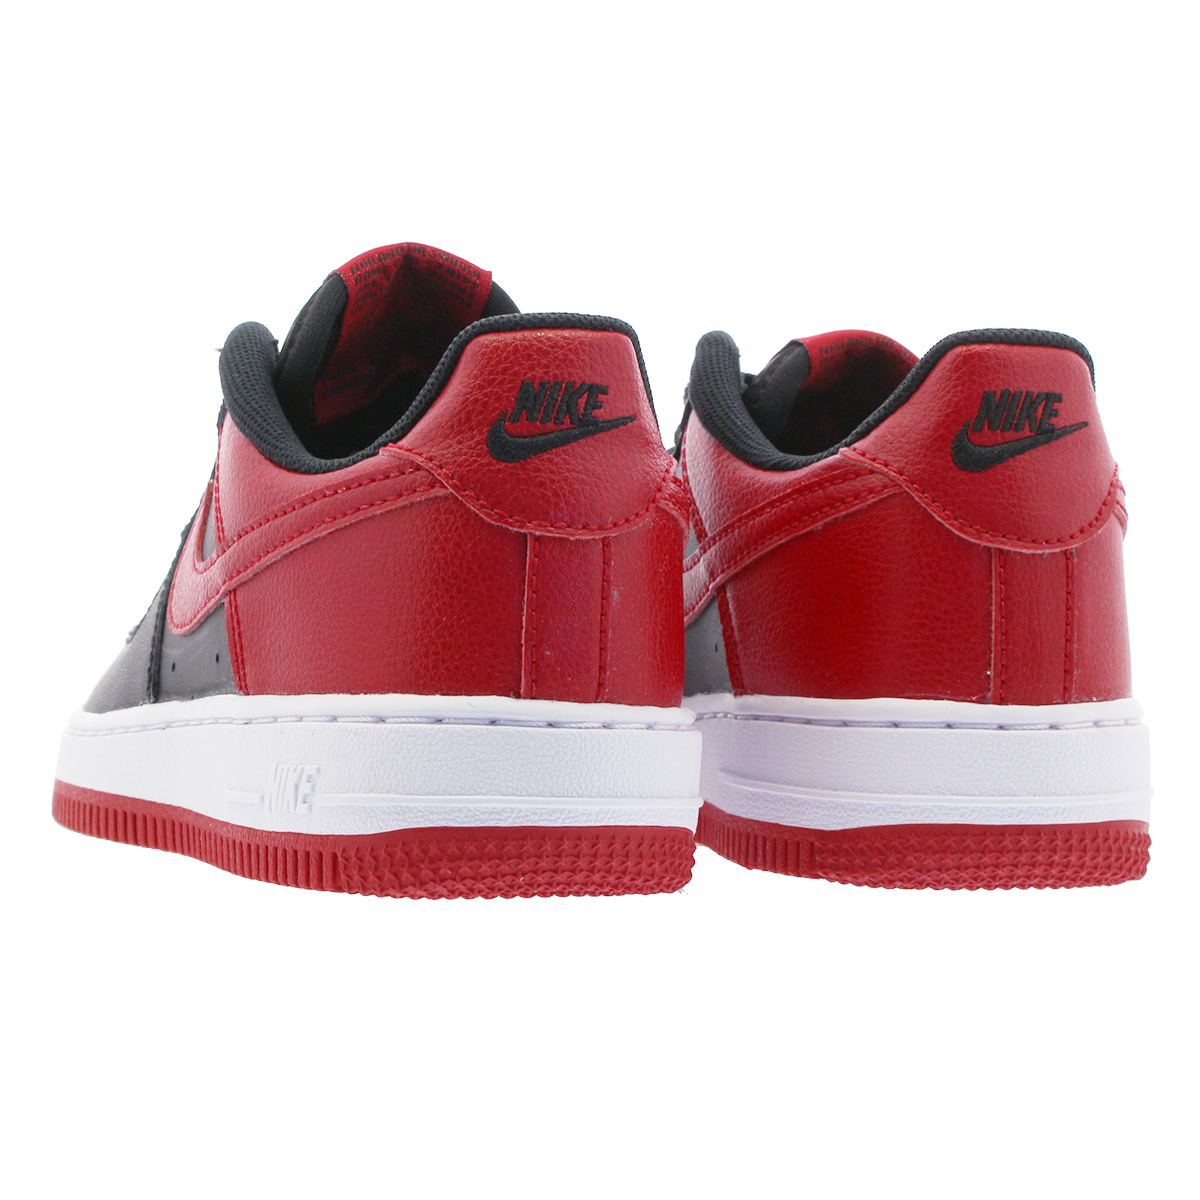 NIKE AIR FORCE 1 PS Nike air force 1 PS BLACKGYM REDWHITE 596,729 016